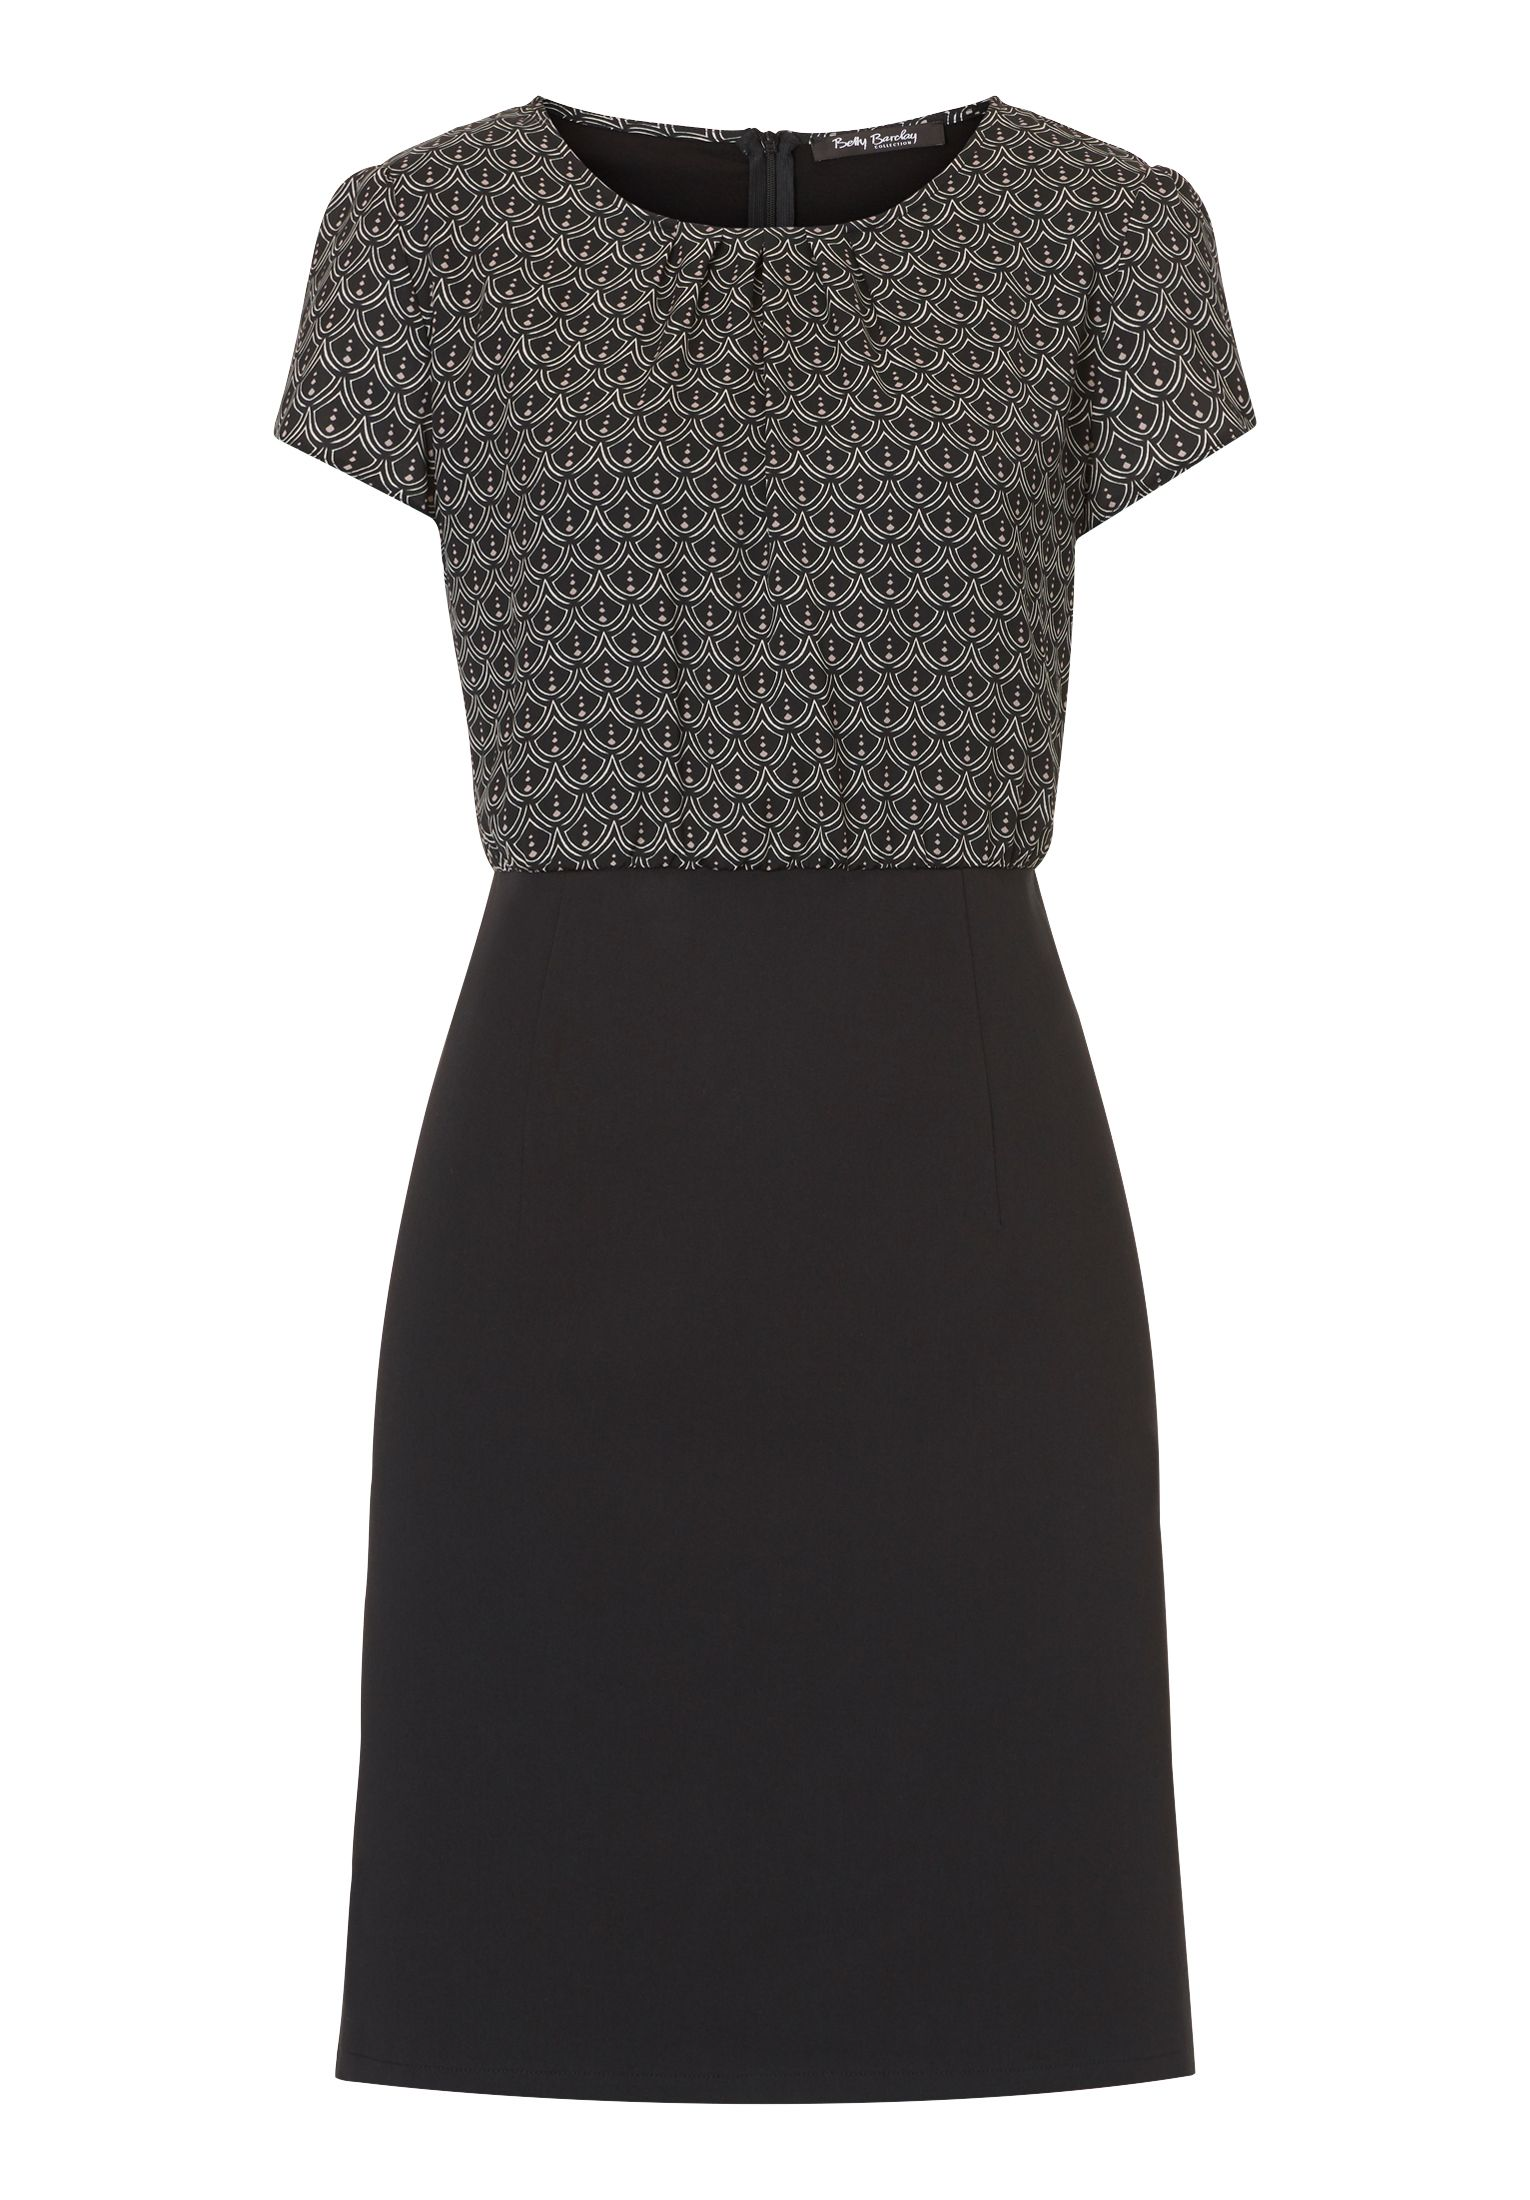 Betty Barclay Print and plain dress, Black